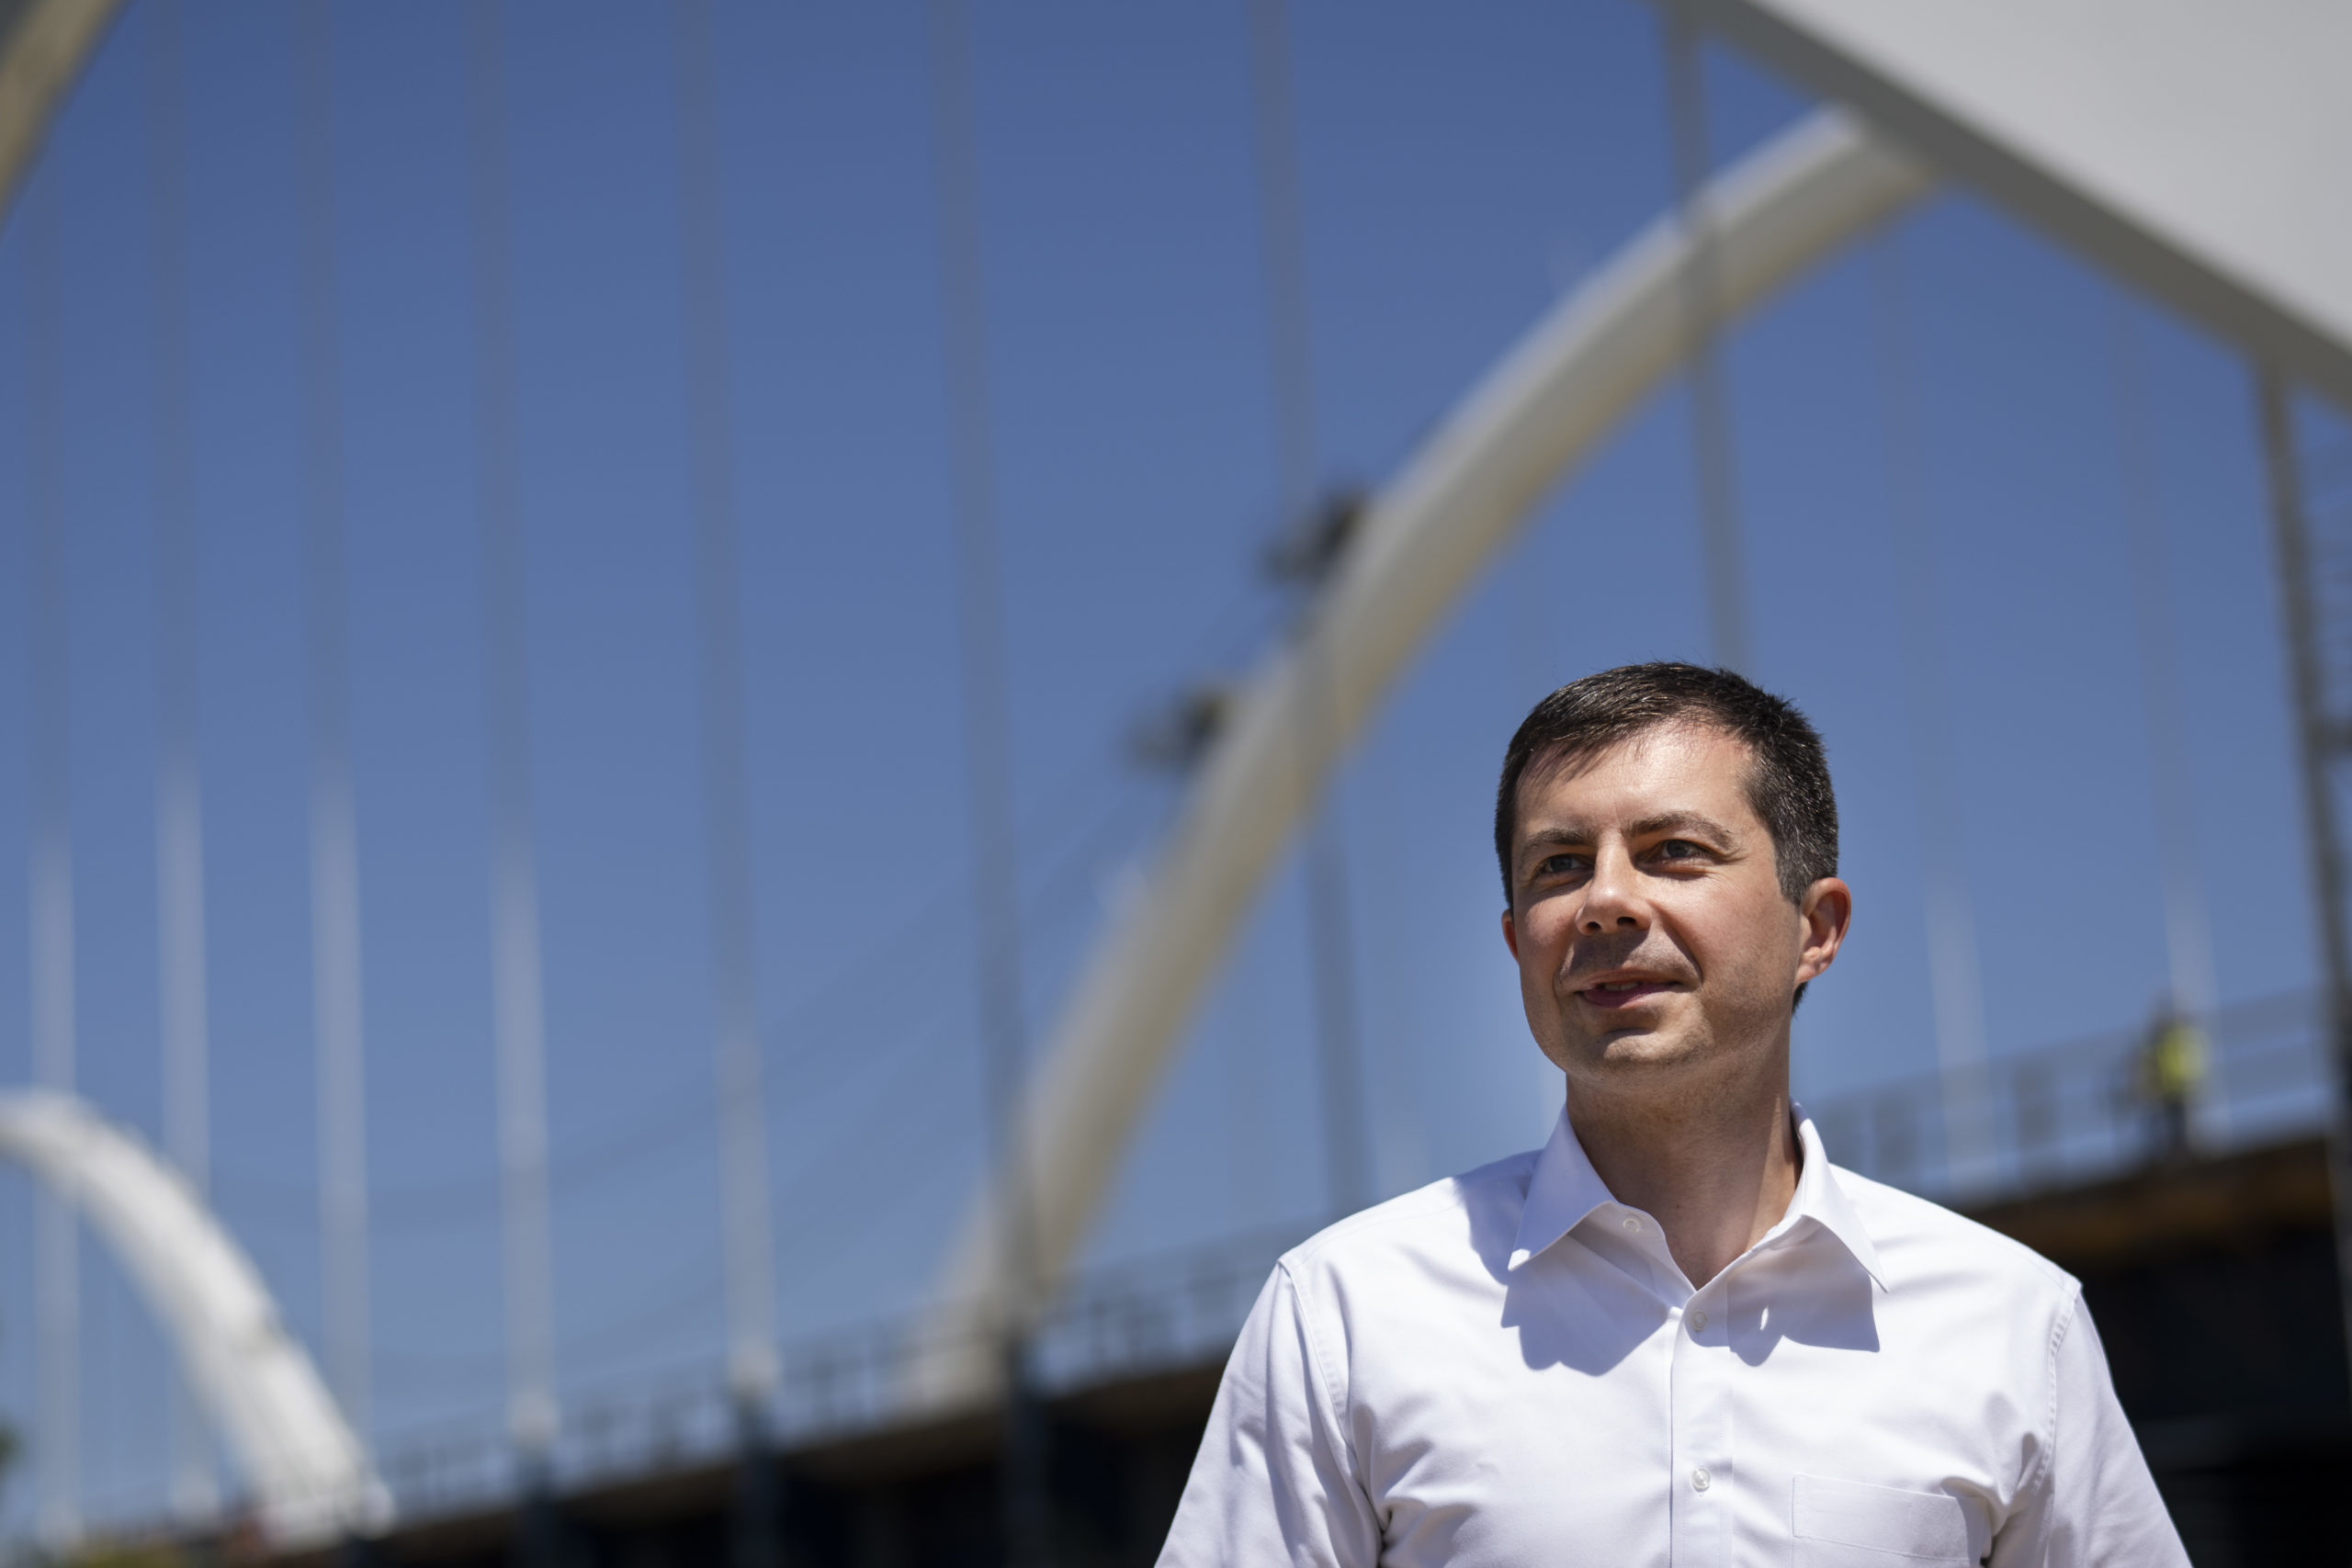 Transportation Secretary Pete Buttigieg arrives for a news conference after touring the construction site atop the new Frederick Douglass Memorial Bridge on May 19, 2021 in Washington, DC. (Drew Angerer/Getty Images)